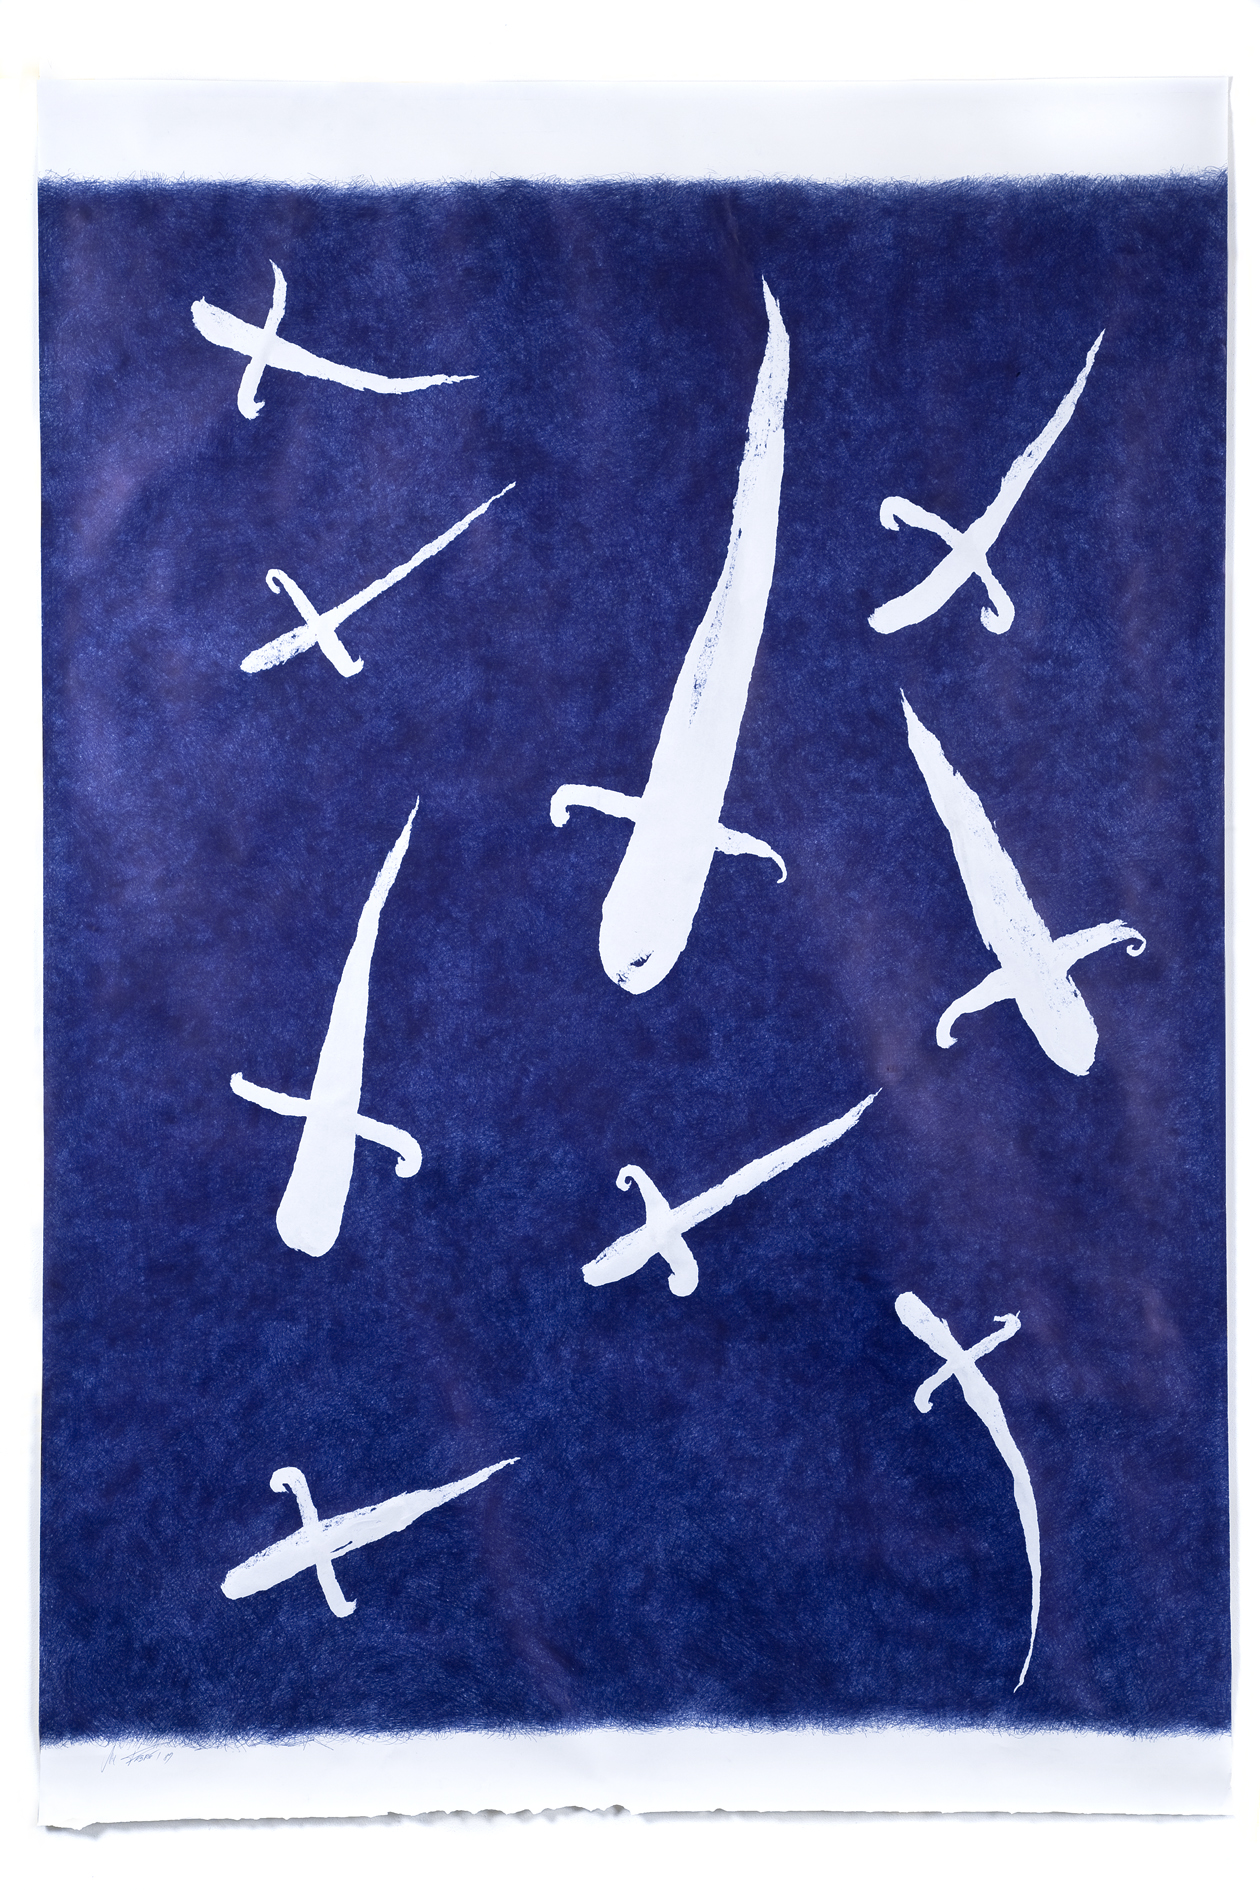 Swords, Crosses and Daggers IV